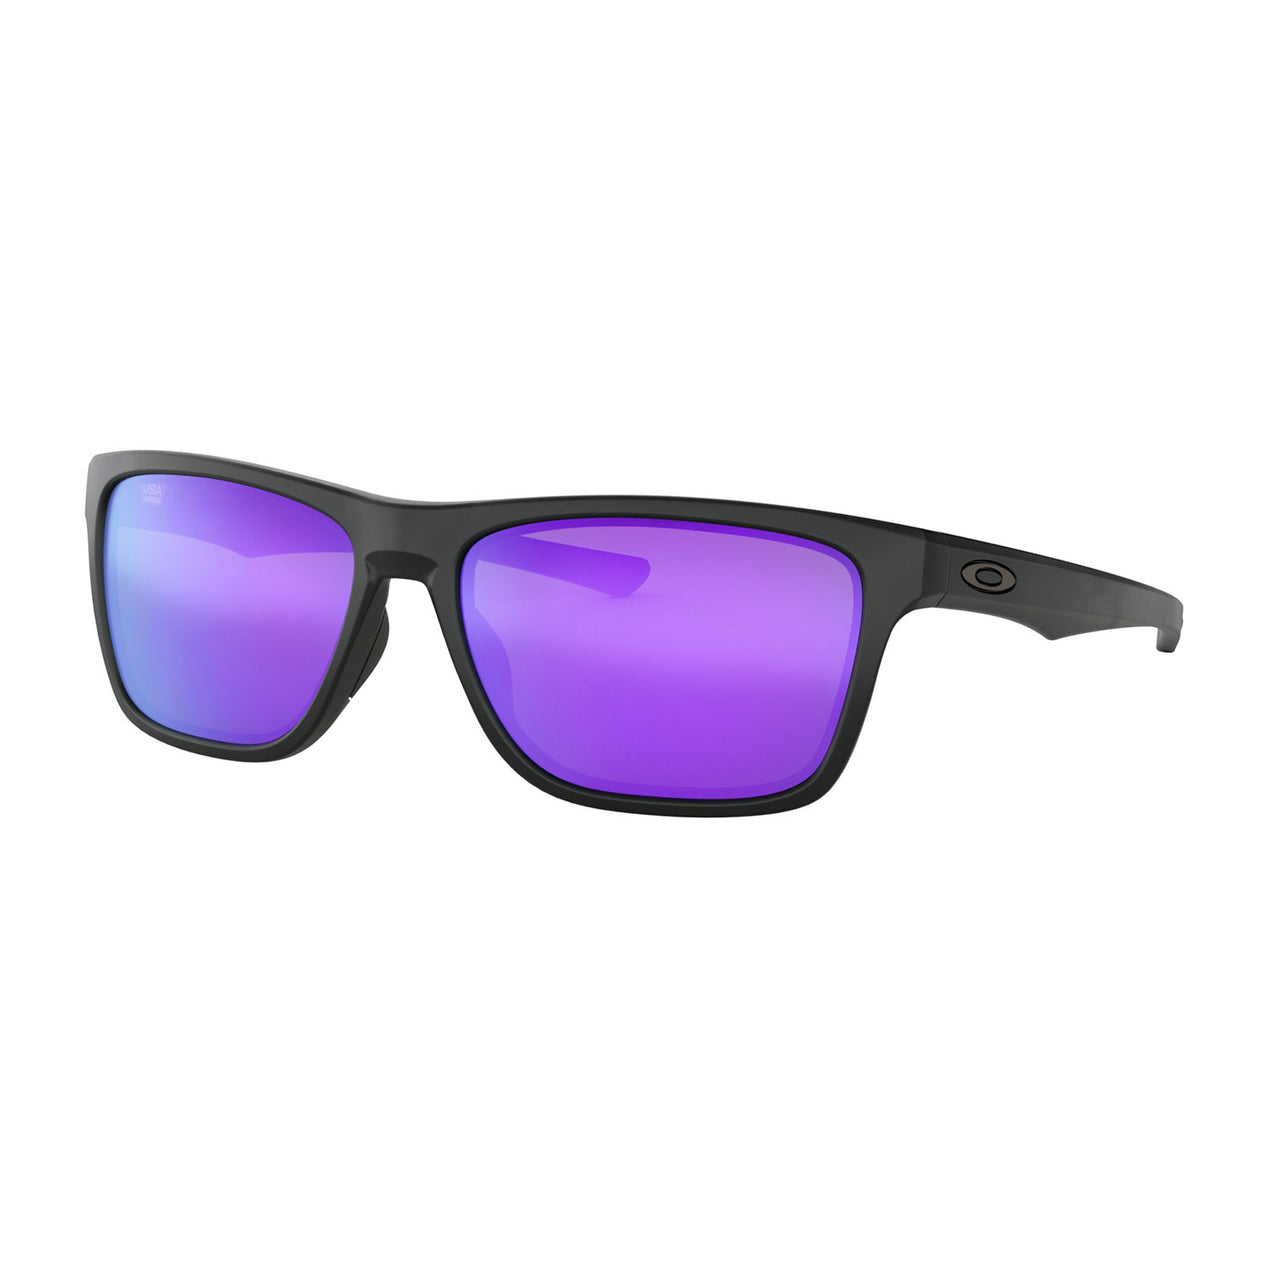 cefb52177 Holston - Matte Black - Violet Iridium Lens Sunglasses No Color ...